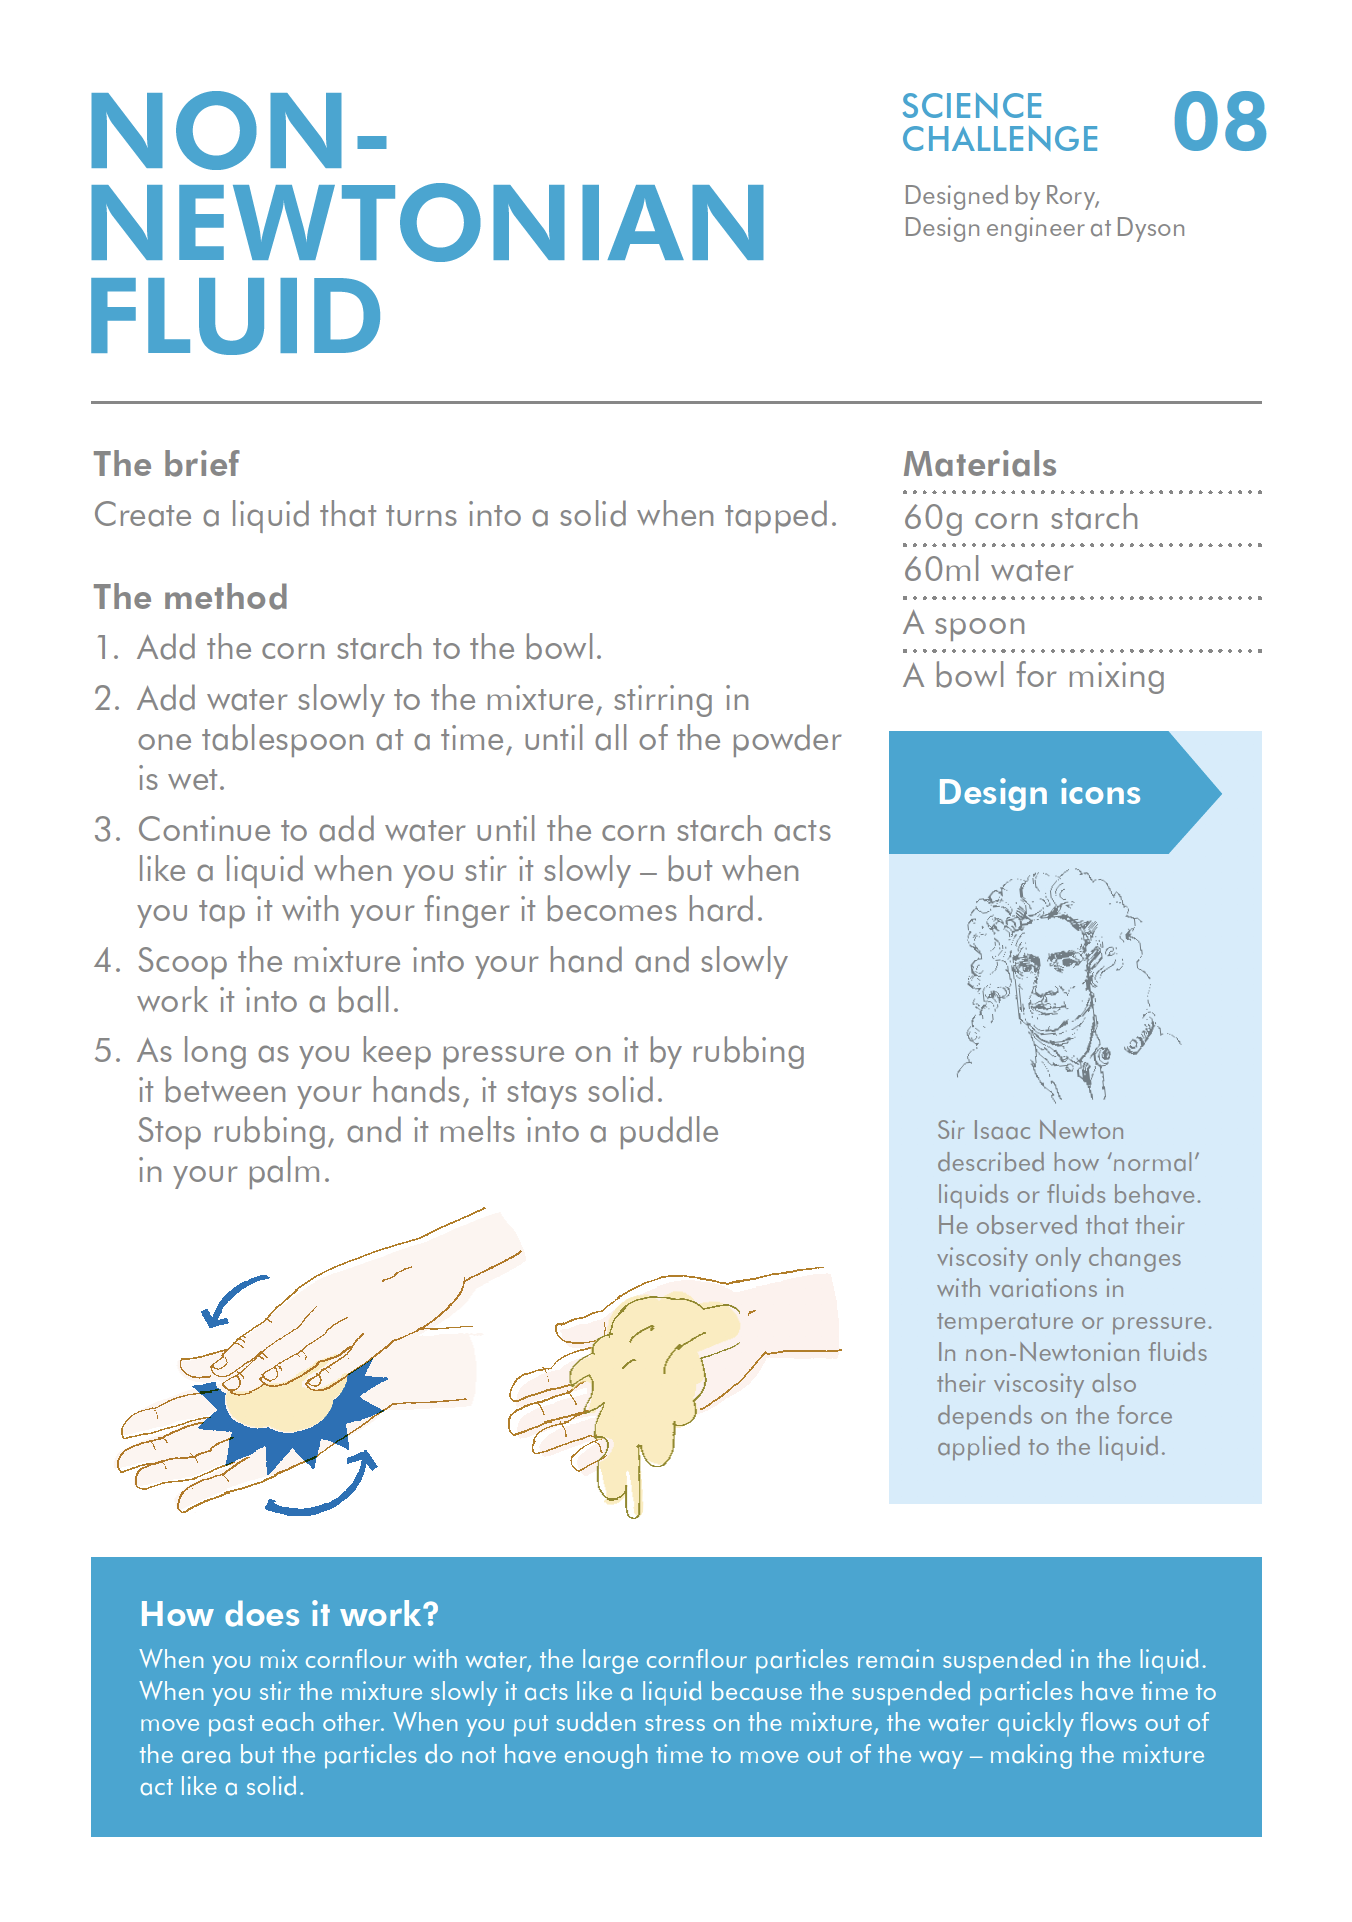 Can You Create A Solid That Turns Into A Liquid When